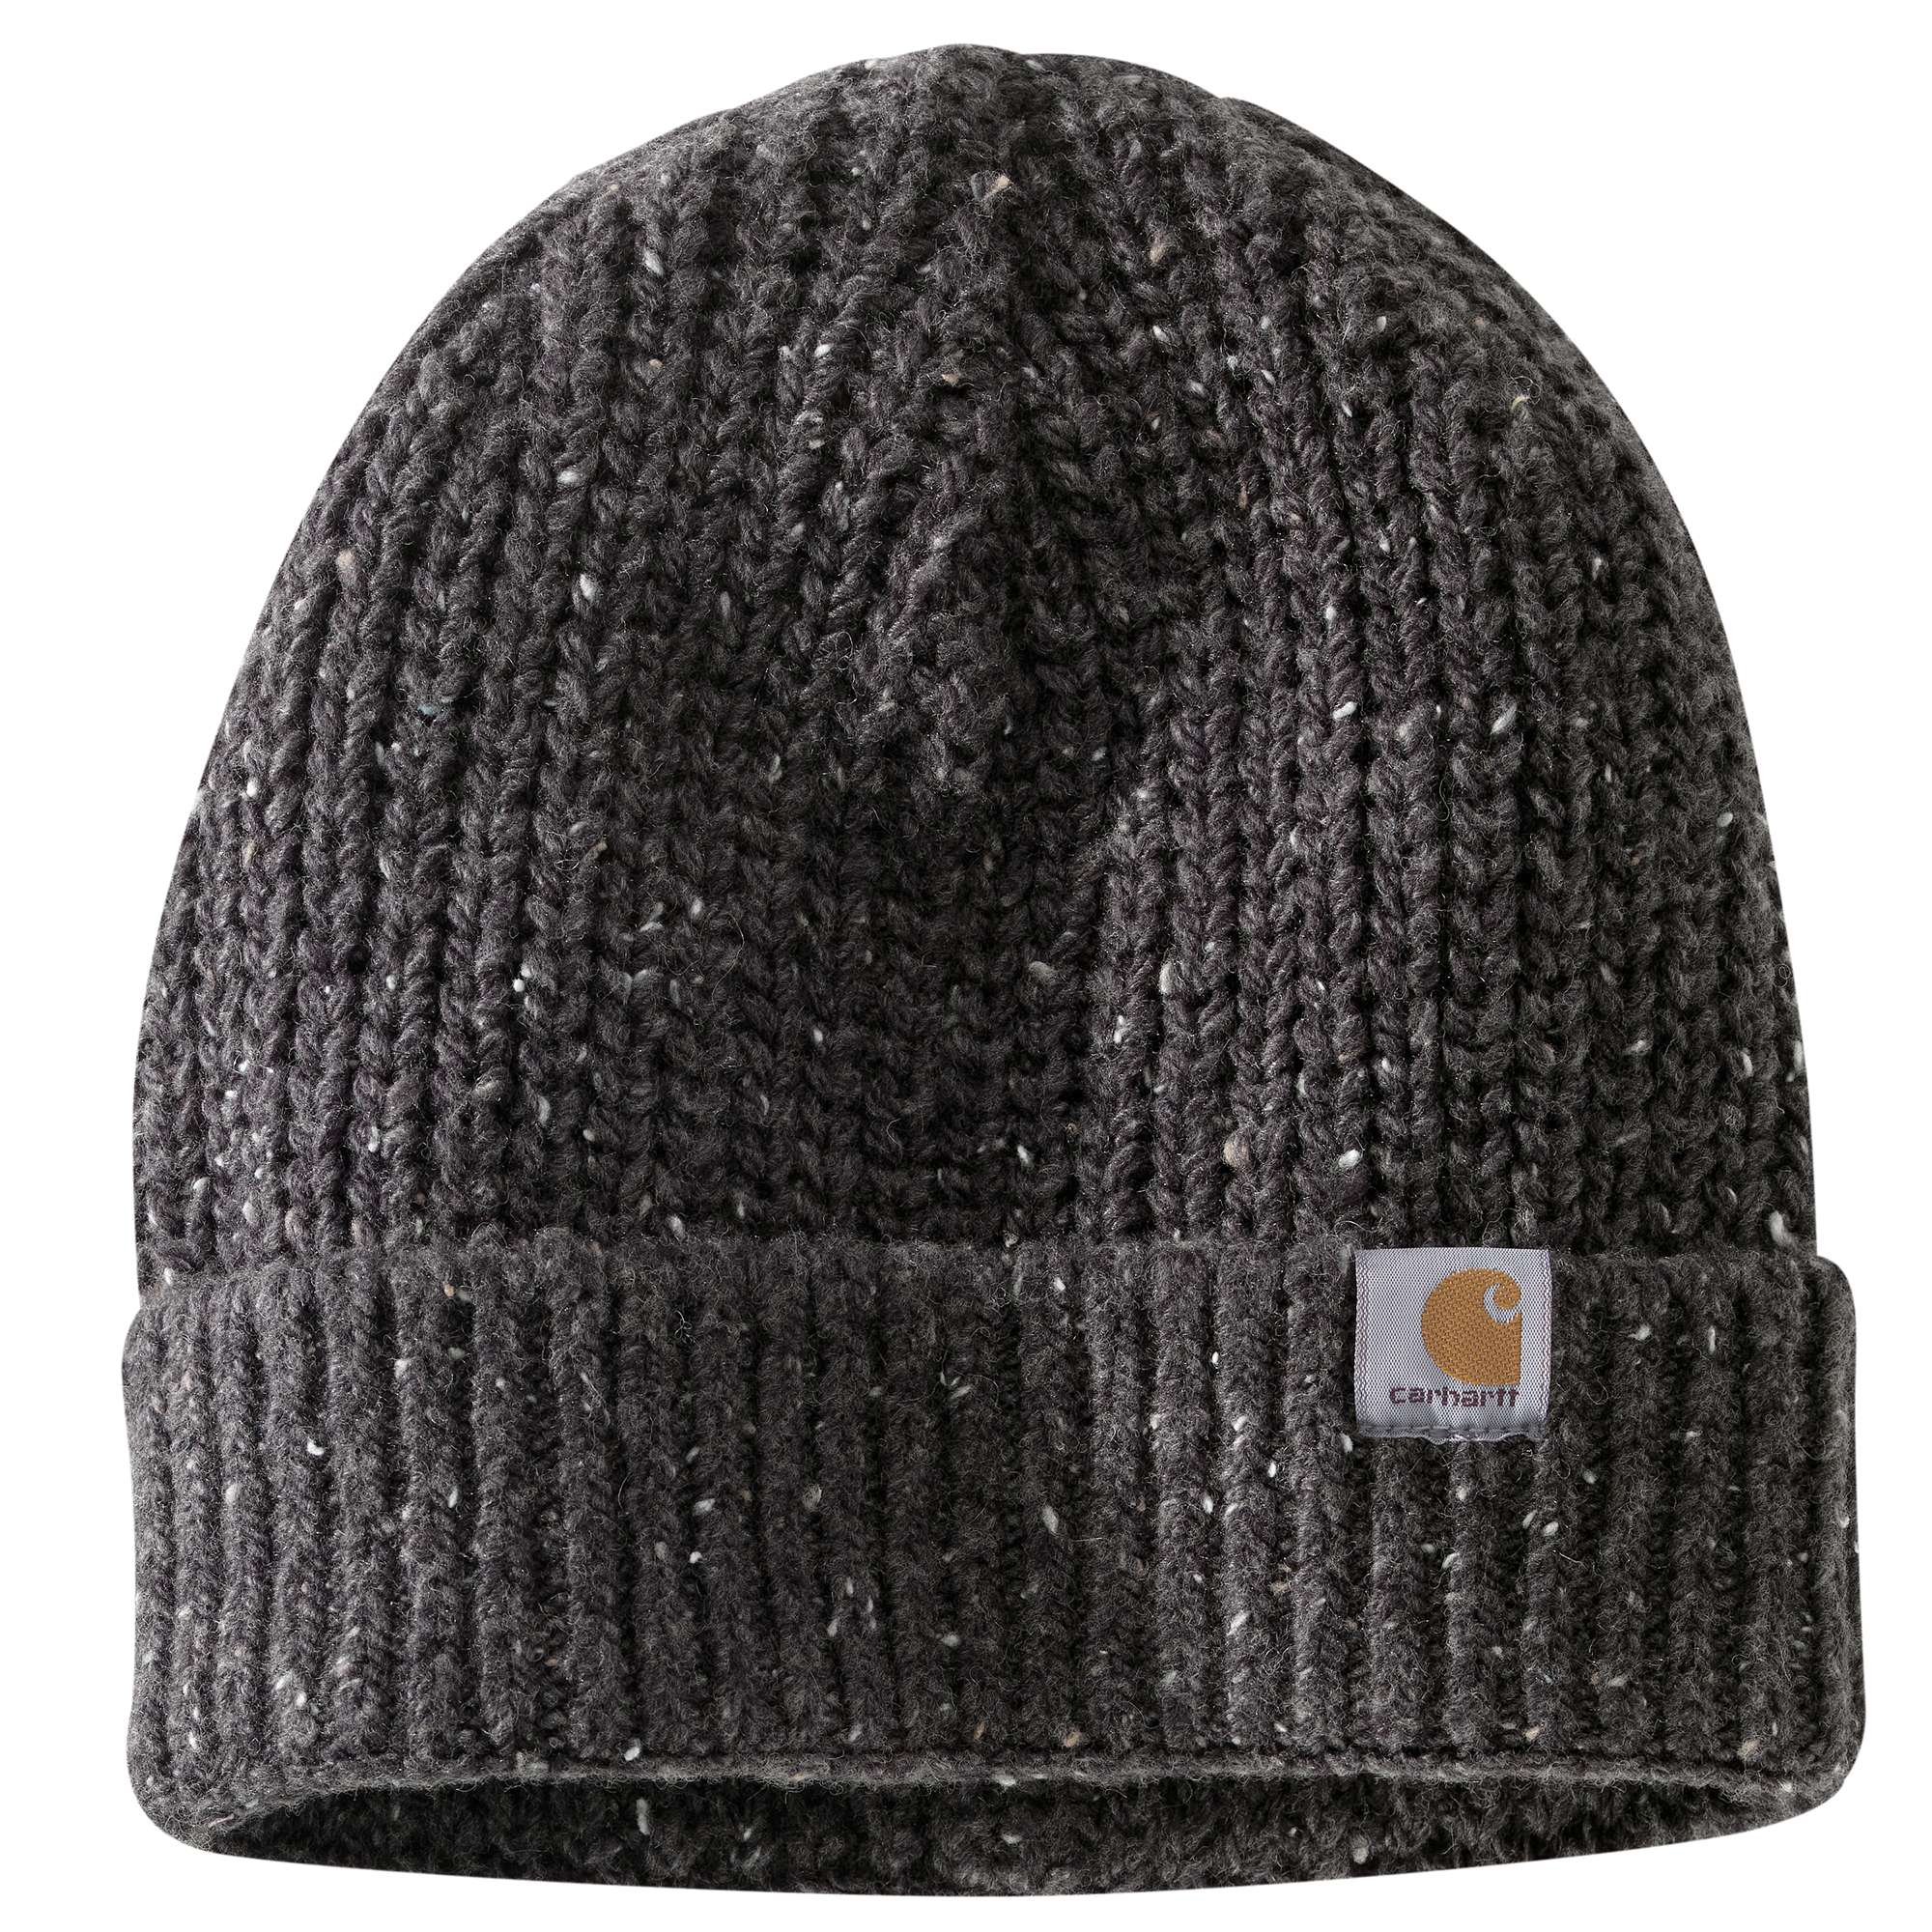 Carhartt W Clearwater Hat - Phelps USA 153f369037d